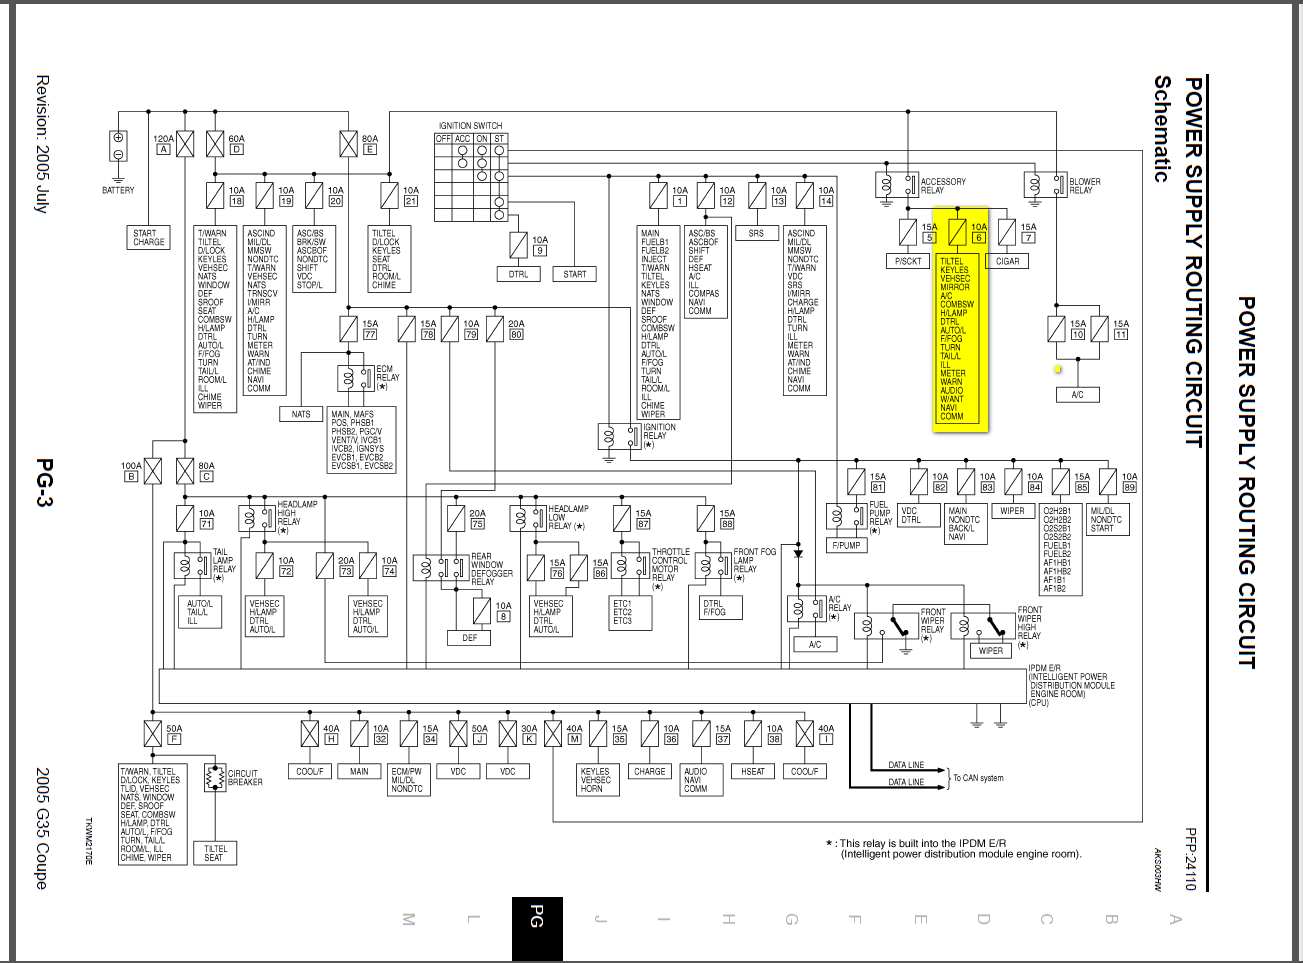 2012 08 02_141837_fuse_6 infiniti g35 radio wiring diagram 2008 infiniti g35 audio wiring 2007 infiniti fx35 fuse box location at n-0.co